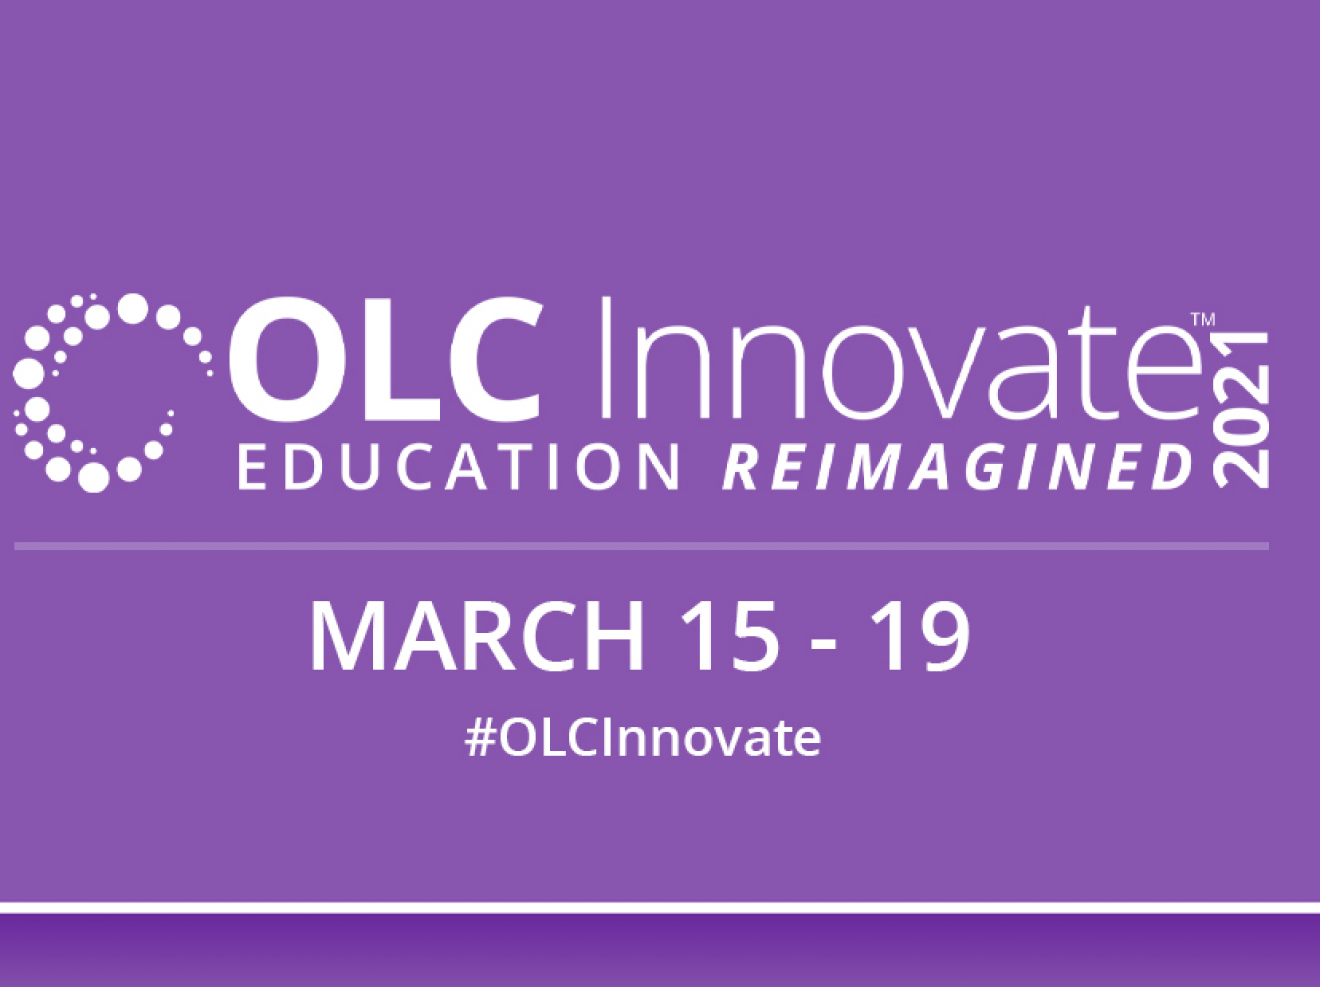 Online Learning Consortium (OLC) March 15-19